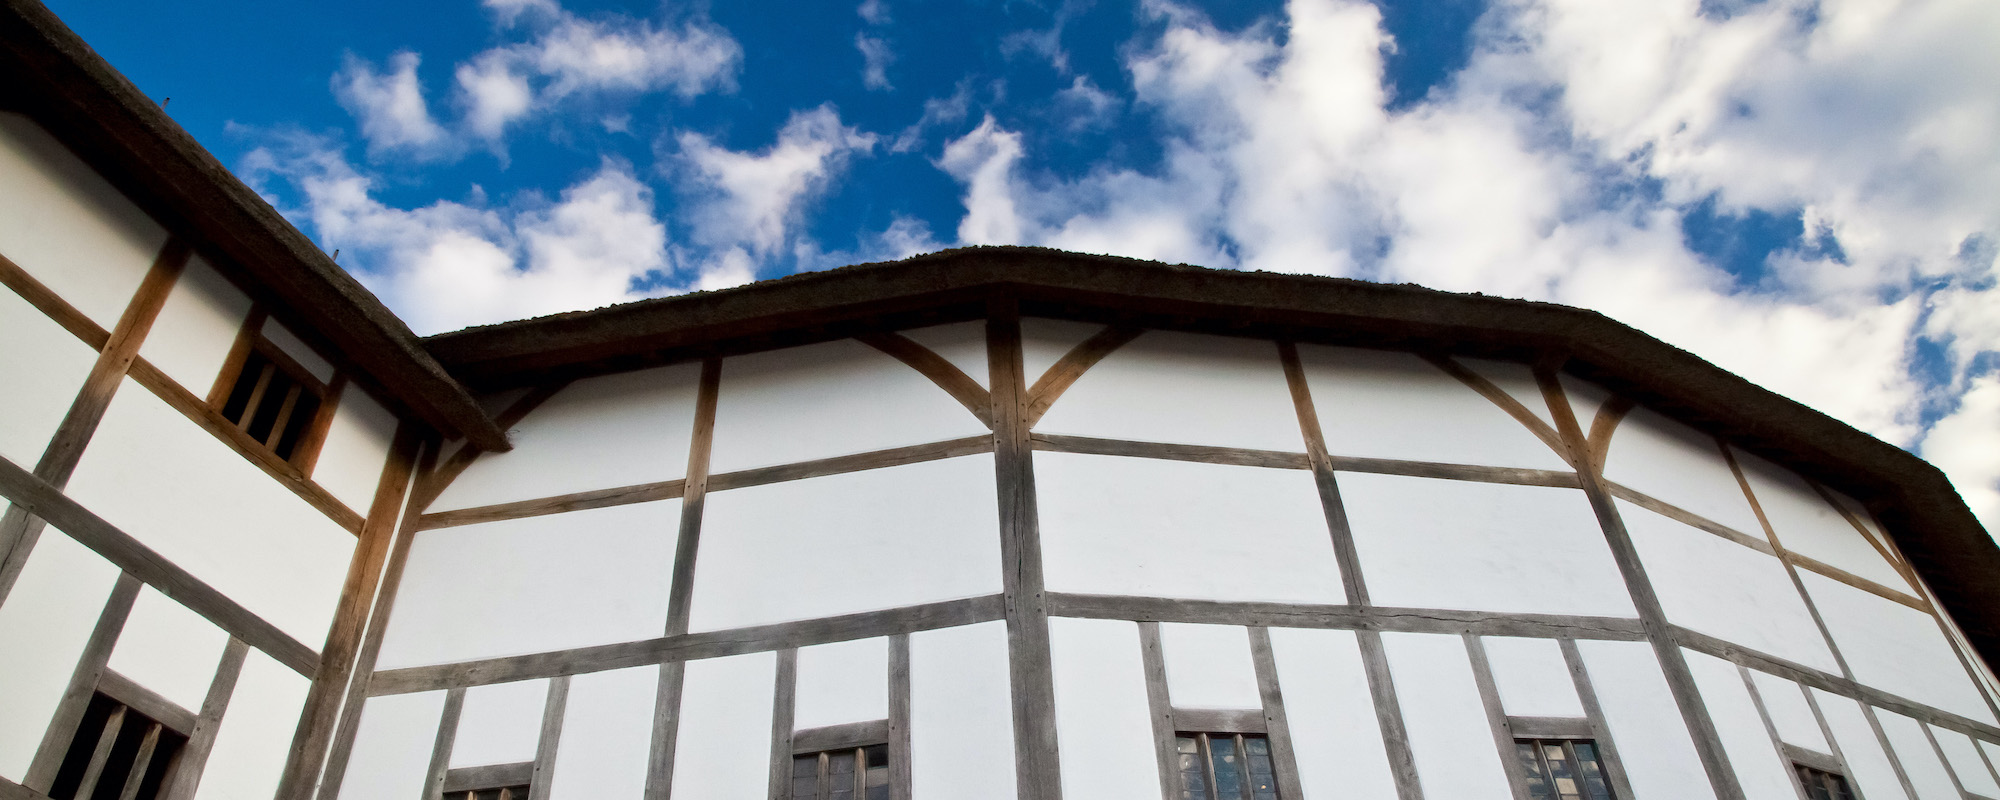 A timber-framed building in front of a blue sky